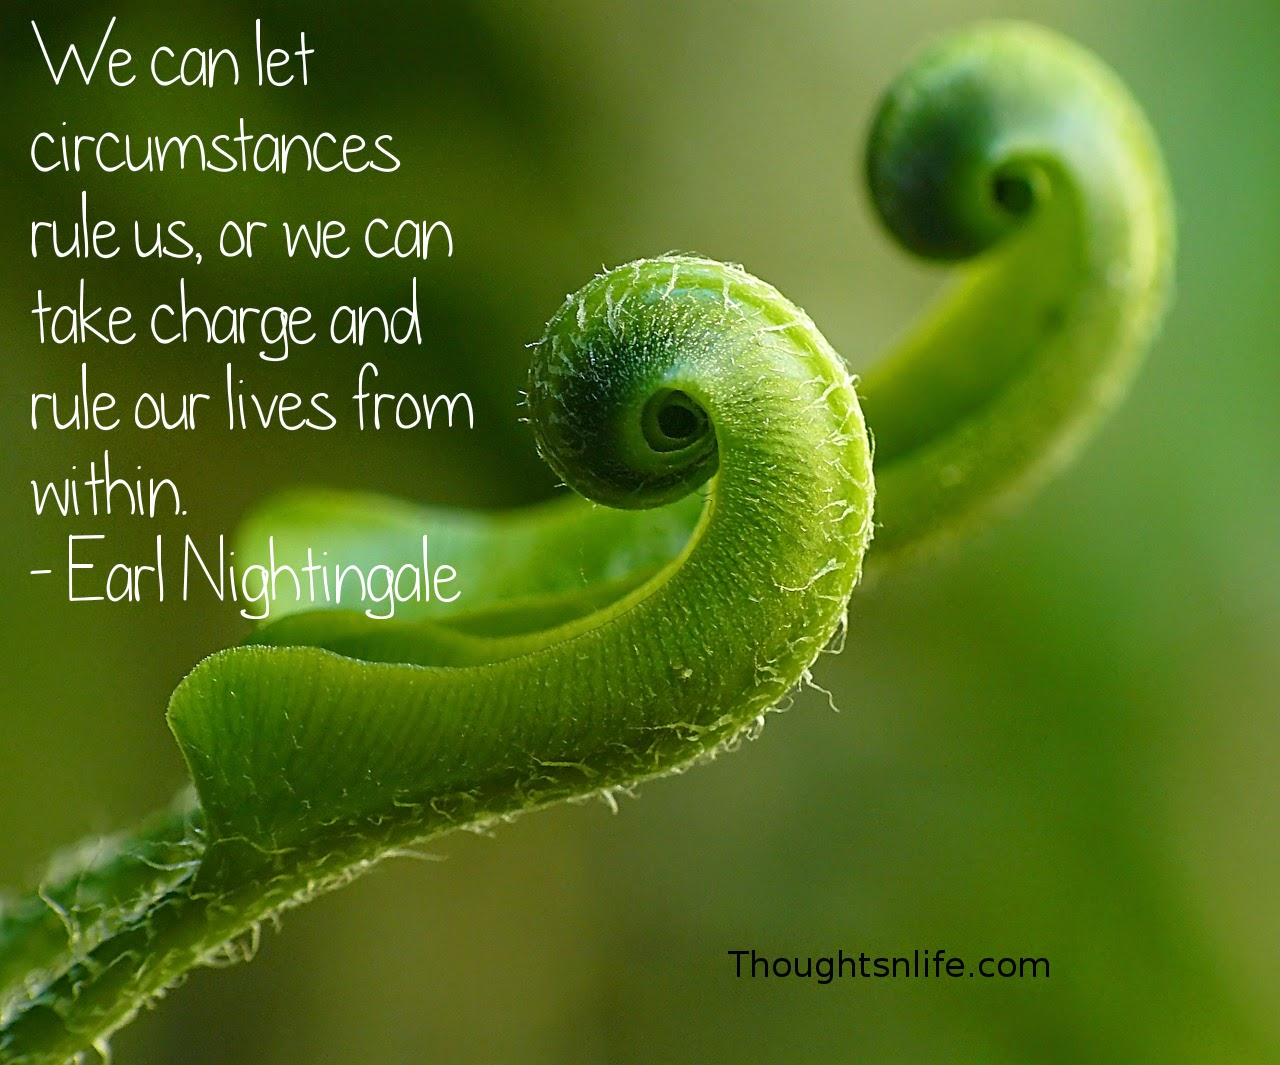 Thoughtsnlife.com: We can let circumstances rule us, or we can take charge and rule our lives from within. - Earl Nightingale